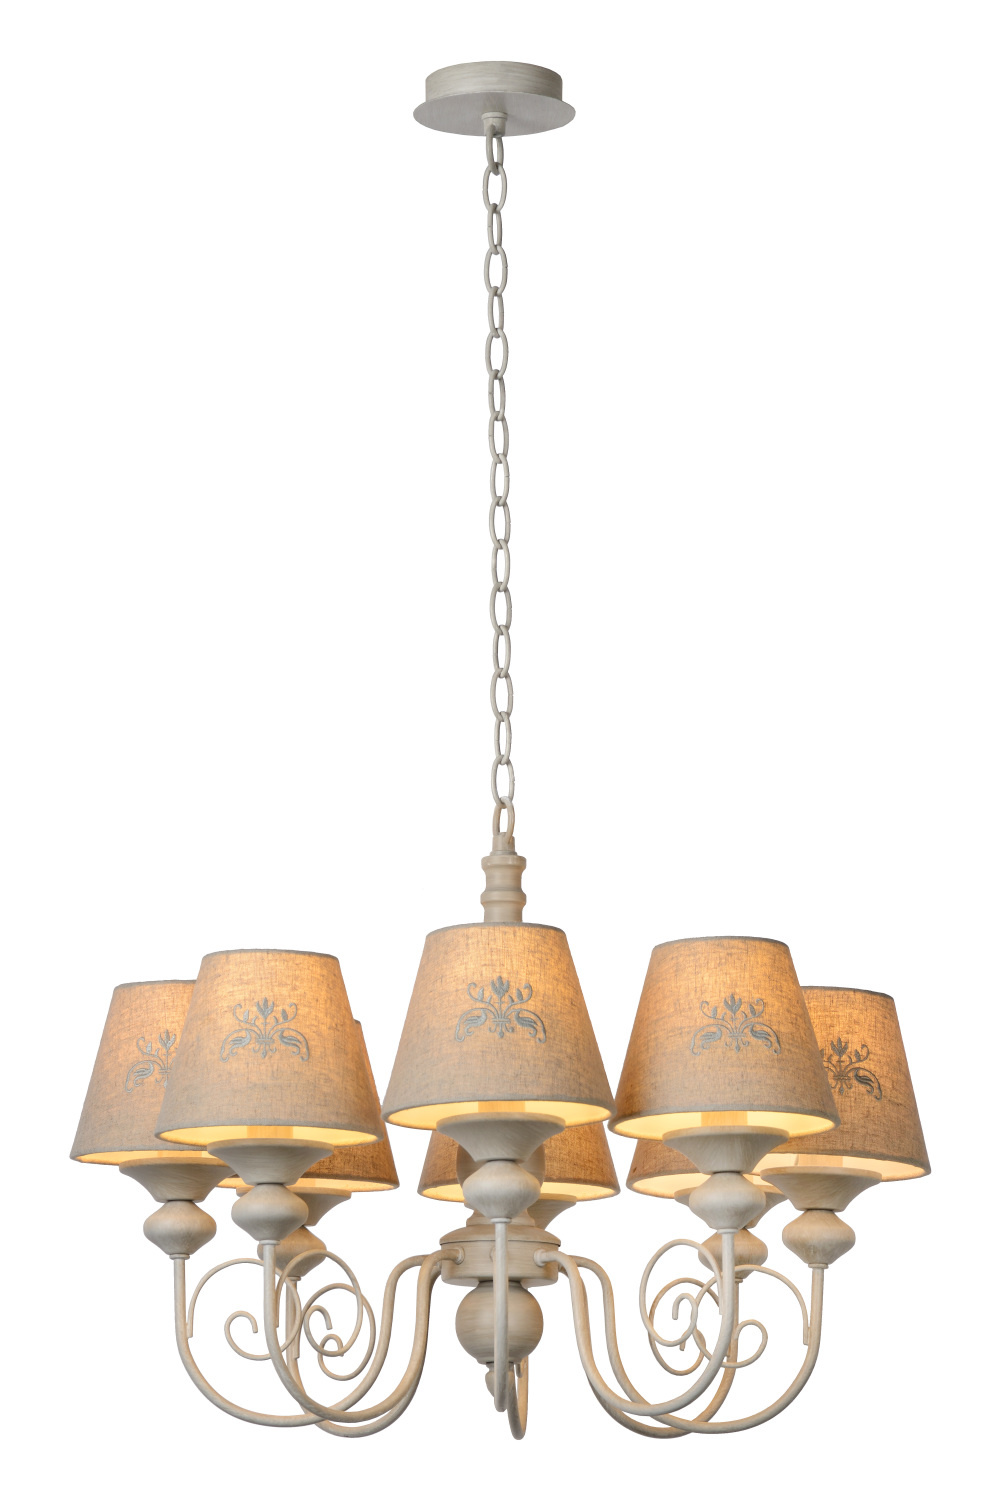 Lucide ROBIN Kroonluchter-Taupe-Ø59-8xE14-40W-Metaal